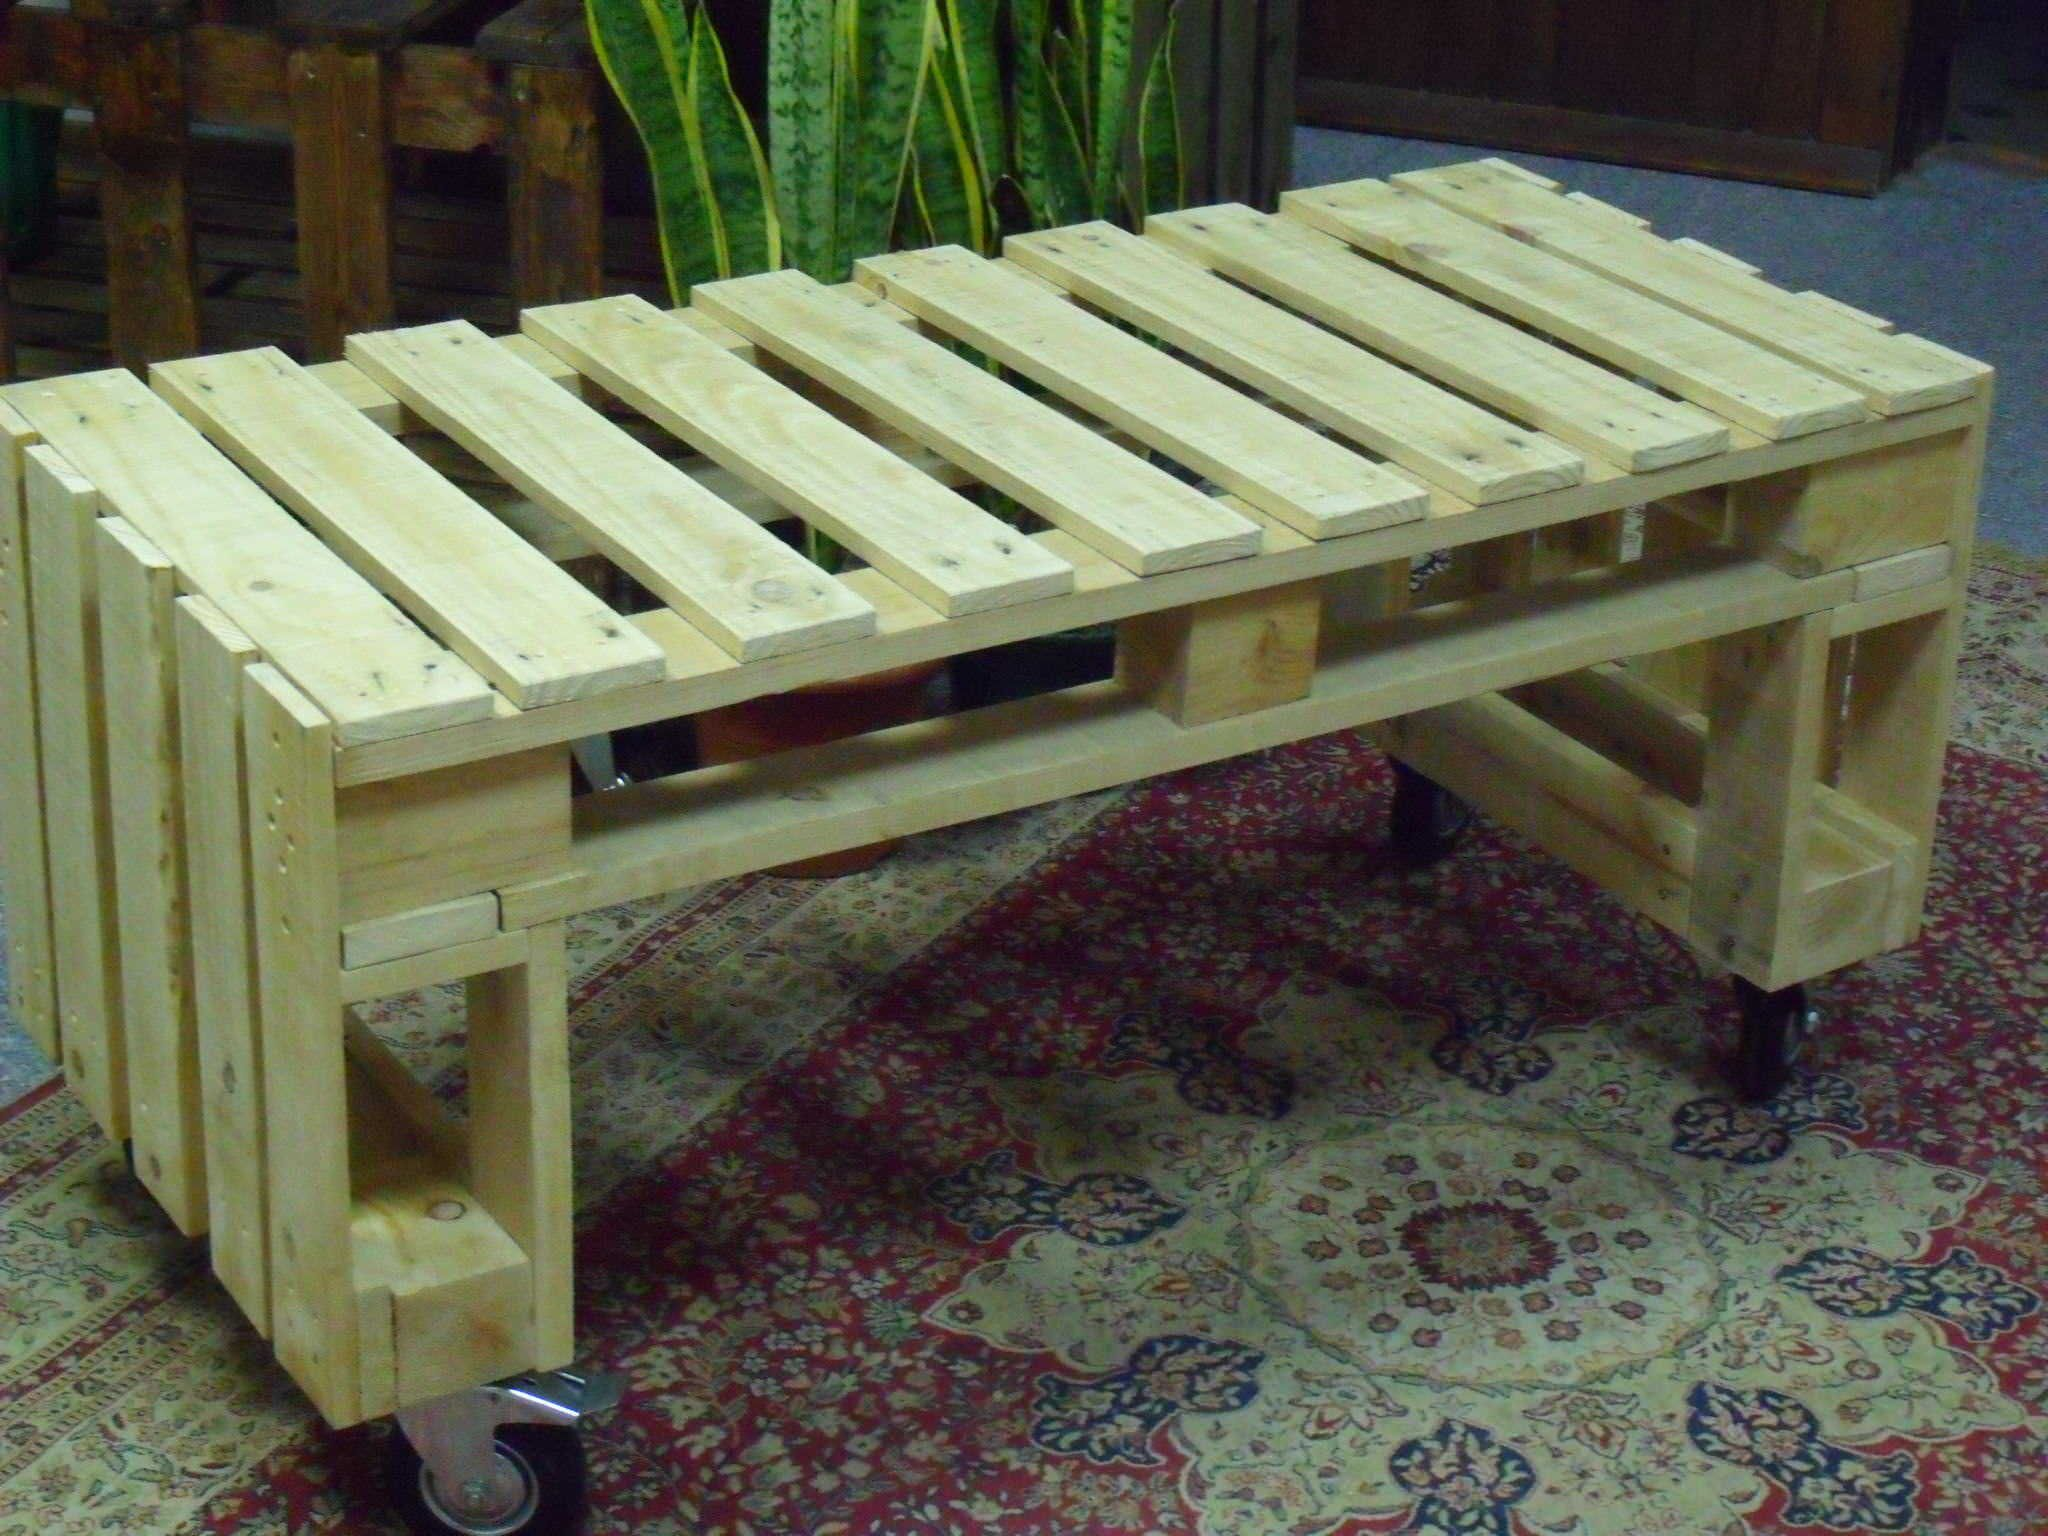 Very Simple Project Pallet Bench Out Of 2 Pallets Meubles De Patio Palette Bancs De Jardin Palettes Et Palette Diy